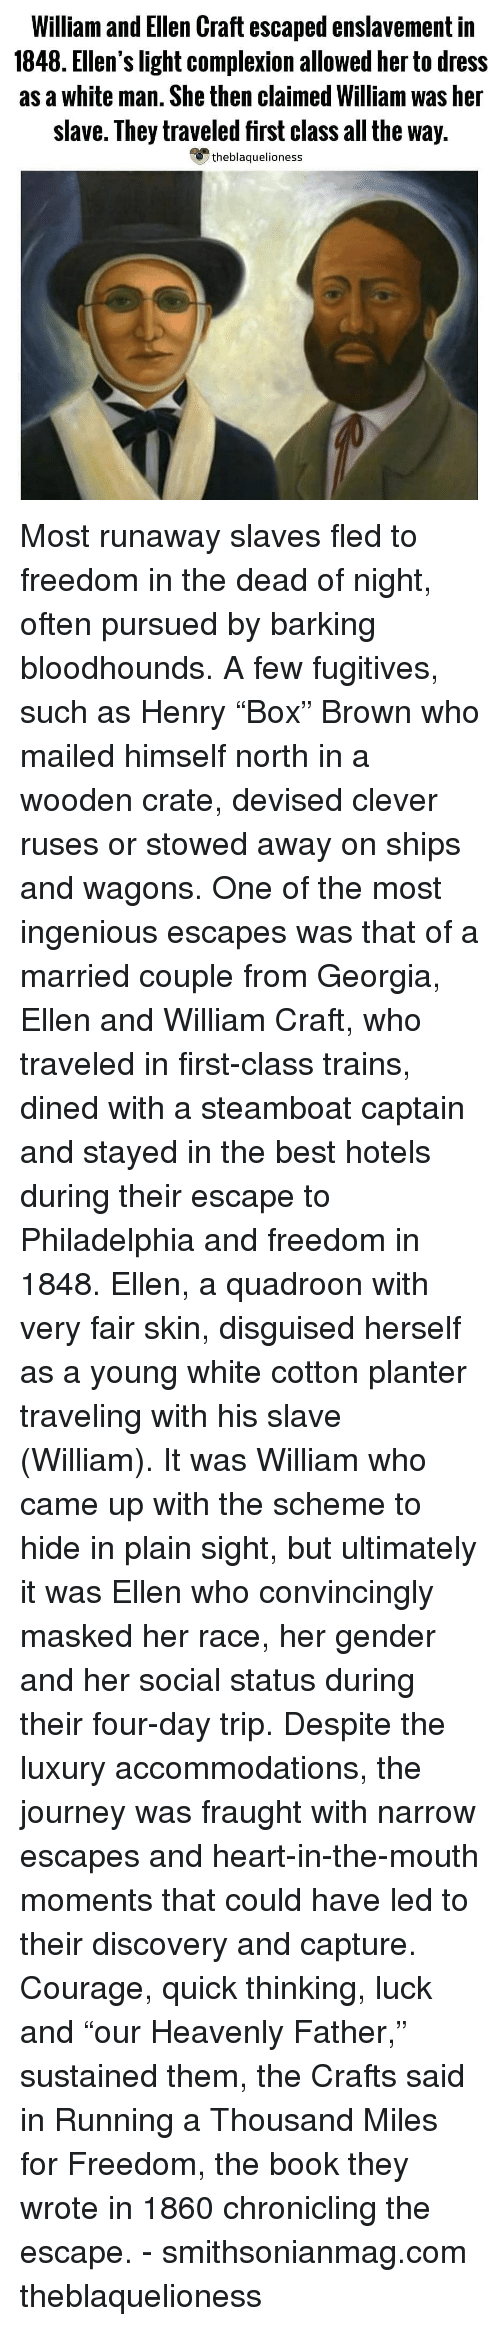 "Journey, Memes, and Best: William and Ellen Craft escaped enslavement in  1848. Ellen's light complexion allowed her to dress  as a white man. She then claimed William was her  slave. They traveled first class all the way.  theblaquelioness Most runaway slaves fled to freedom in the dead of night, often pursued by barking bloodhounds. A few fugitives, such as Henry ""Box"" Brown who mailed himself north in a wooden crate, devised clever ruses or stowed away on ships and wagons. One of the most ingenious escapes was that of a married couple from Georgia, Ellen and William Craft, who traveled in first-class trains, dined with a steamboat captain and stayed in the best hotels during their escape to Philadelphia and freedom in 1848. Ellen, a quadroon with very fair skin, disguised herself as a young white cotton planter traveling with his slave (William). It was William who came up with the scheme to hide in plain sight, but ultimately it was Ellen who convincingly masked her race, her gender and her social status during their four-day trip. Despite the luxury accommodations, the journey was fraught with narrow escapes and heart-in-the-mouth moments that could have led to their discovery and capture. Courage, quick thinking, luck and ""our Heavenly Father,"" sustained them, the Crafts said in Running a Thousand Miles for Freedom, the book they wrote in 1860 chronicling the escape. - smithsonianmag.com theblaquelioness"